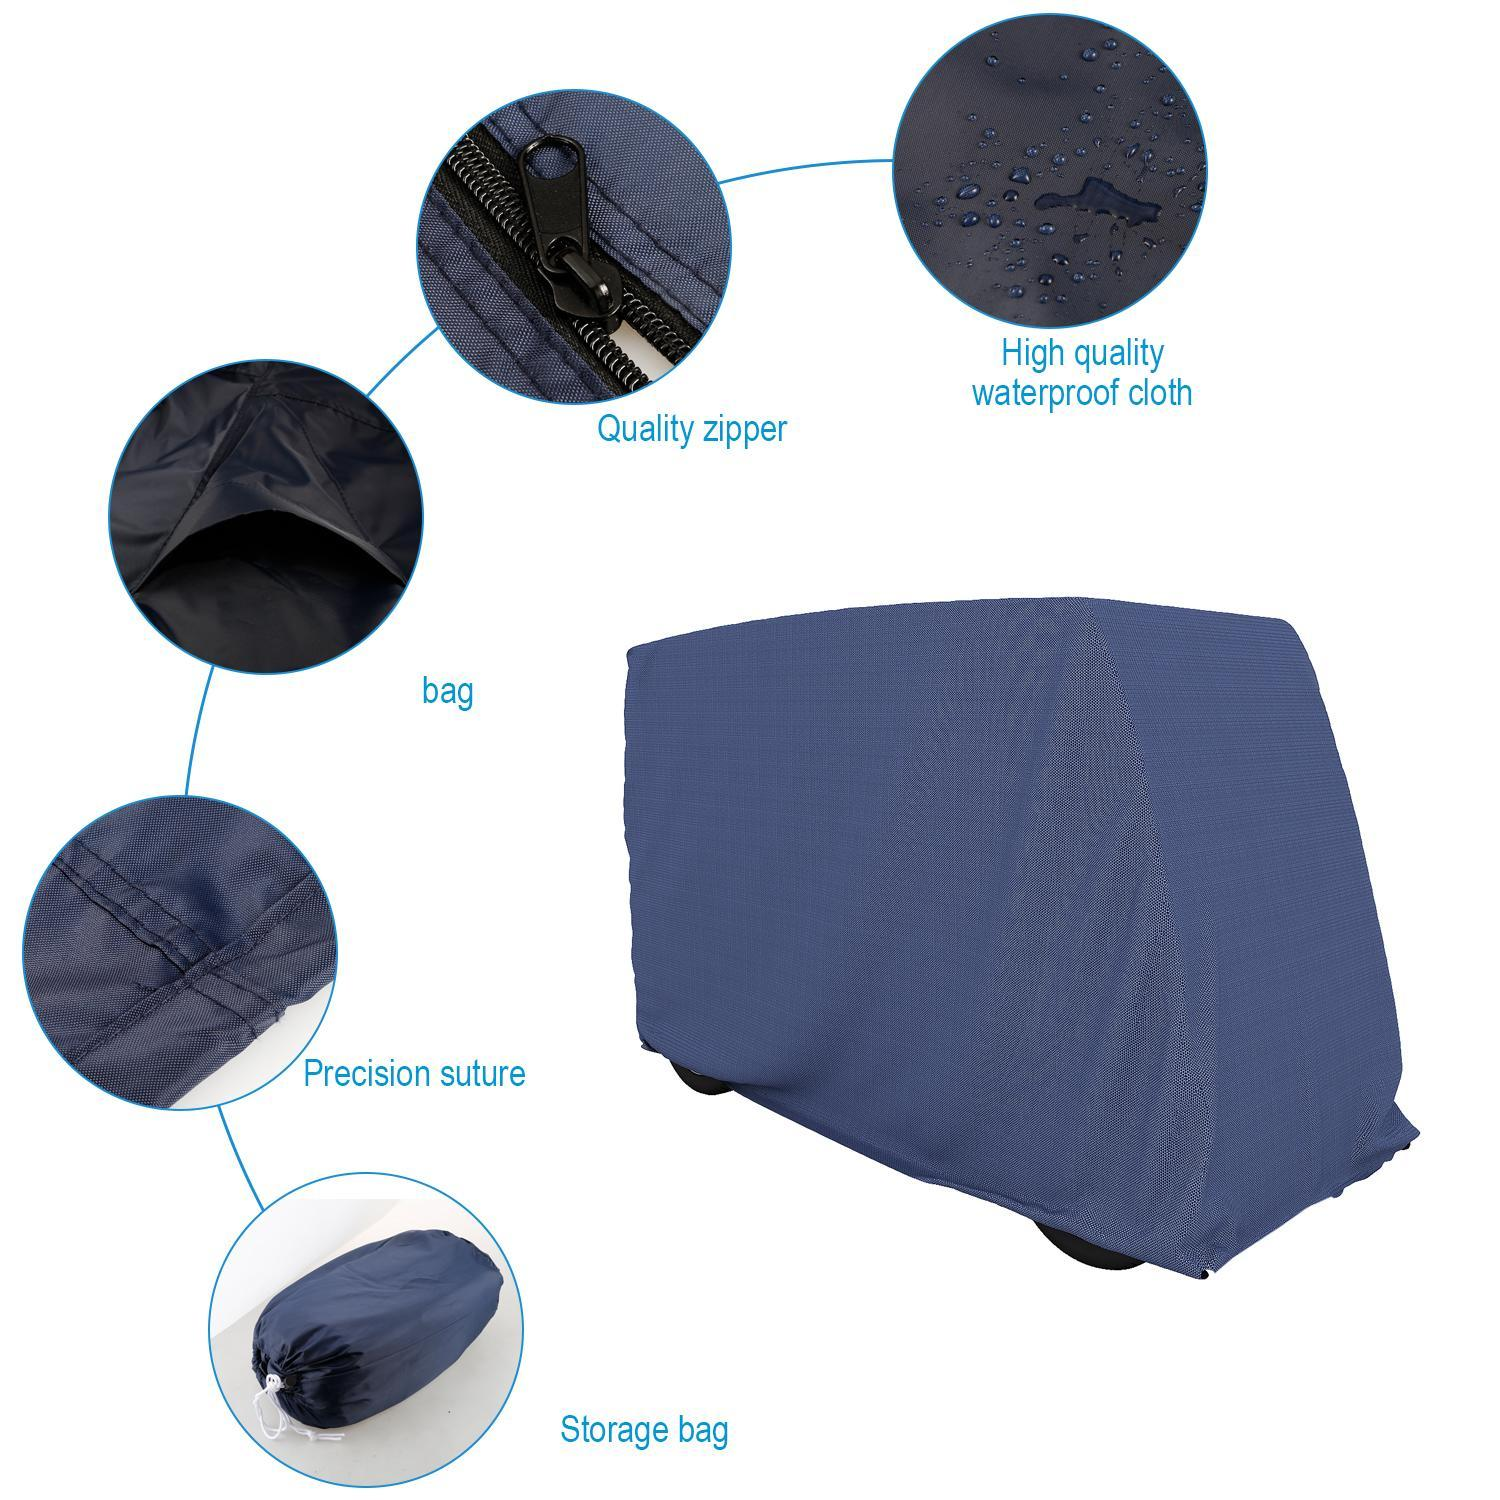 Cdicount Waterproof Golf Cart Cover Covers Club Car, EZGO...